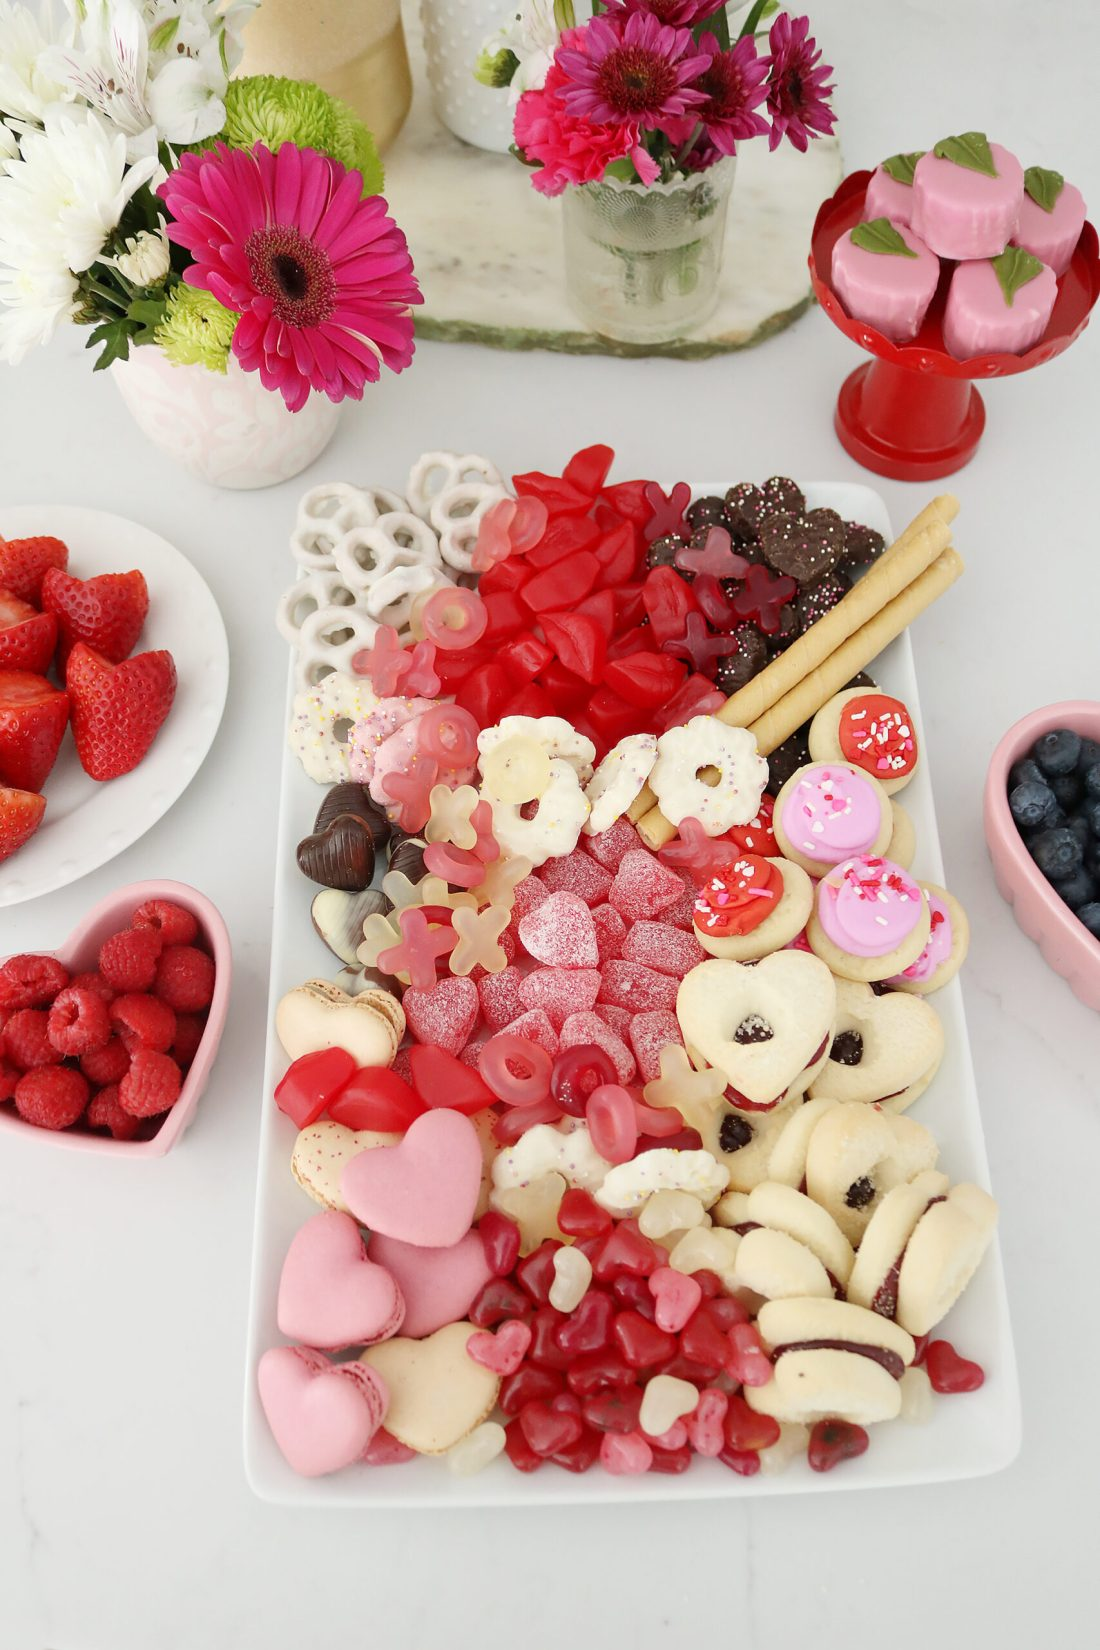 Bring Valentine's Day Home this year!  Put together a Valentine's charcuterie board with heart shaped chocolate, cinnamon lips and macrons!  So many fun Valentine's Day ideas to share with your family || Darling Darleen Top Lifestyle Blogger #ctblogger #darlingdarleen #valentinesday